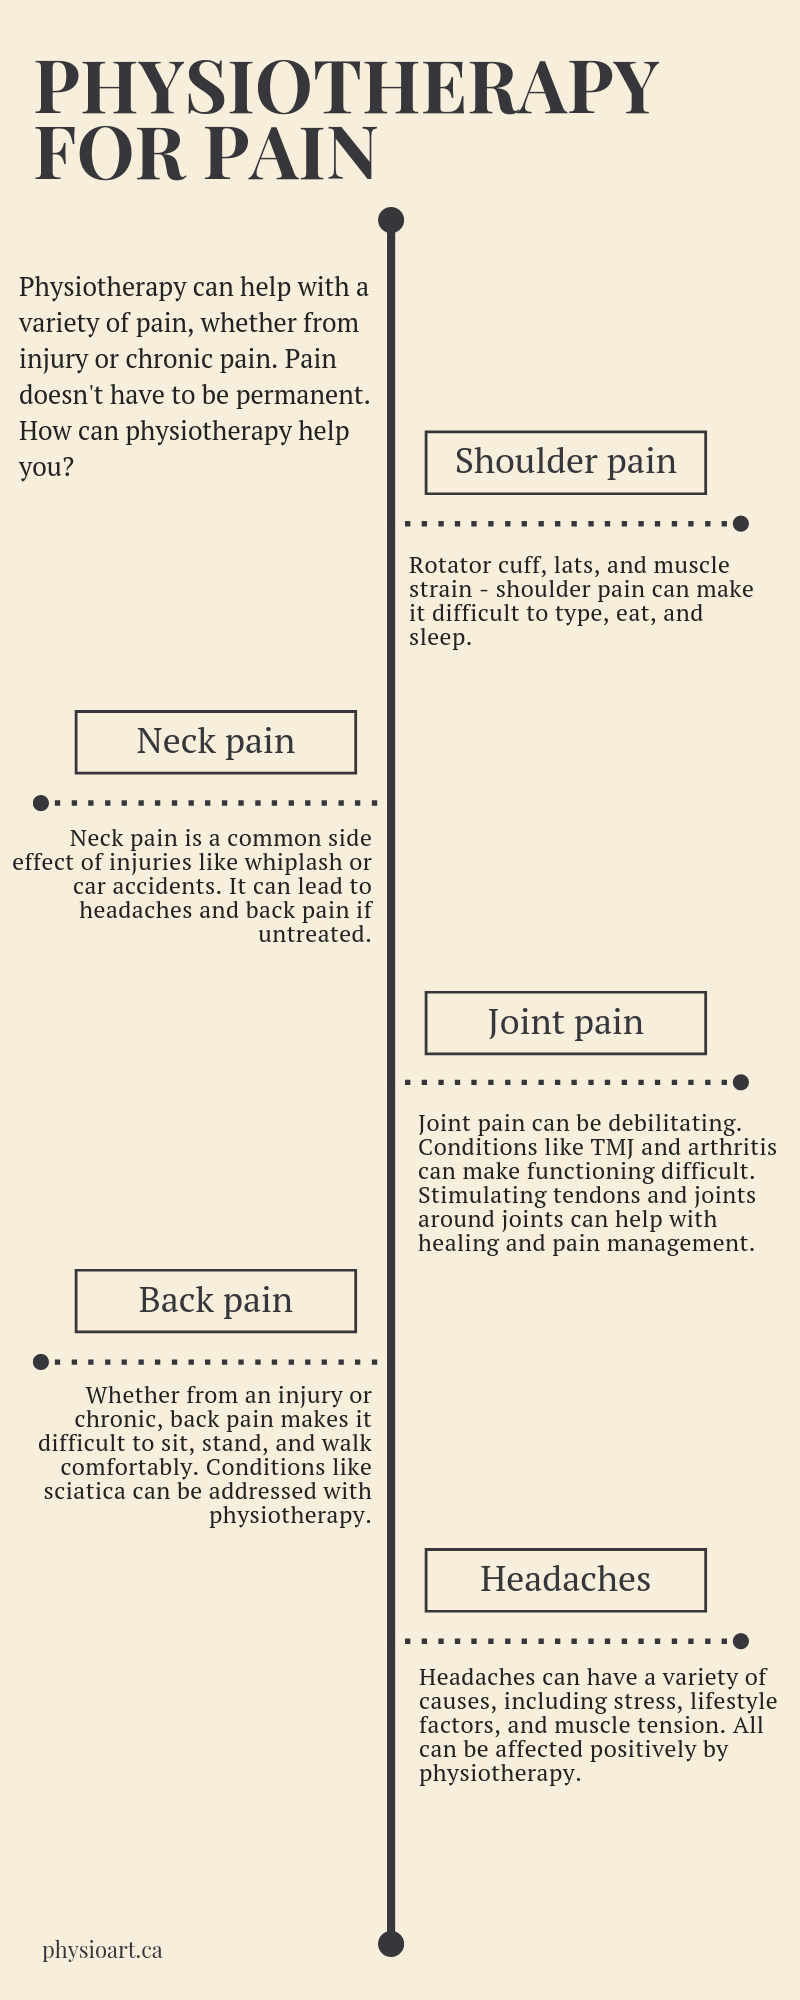 physiotherapy for pain infographic